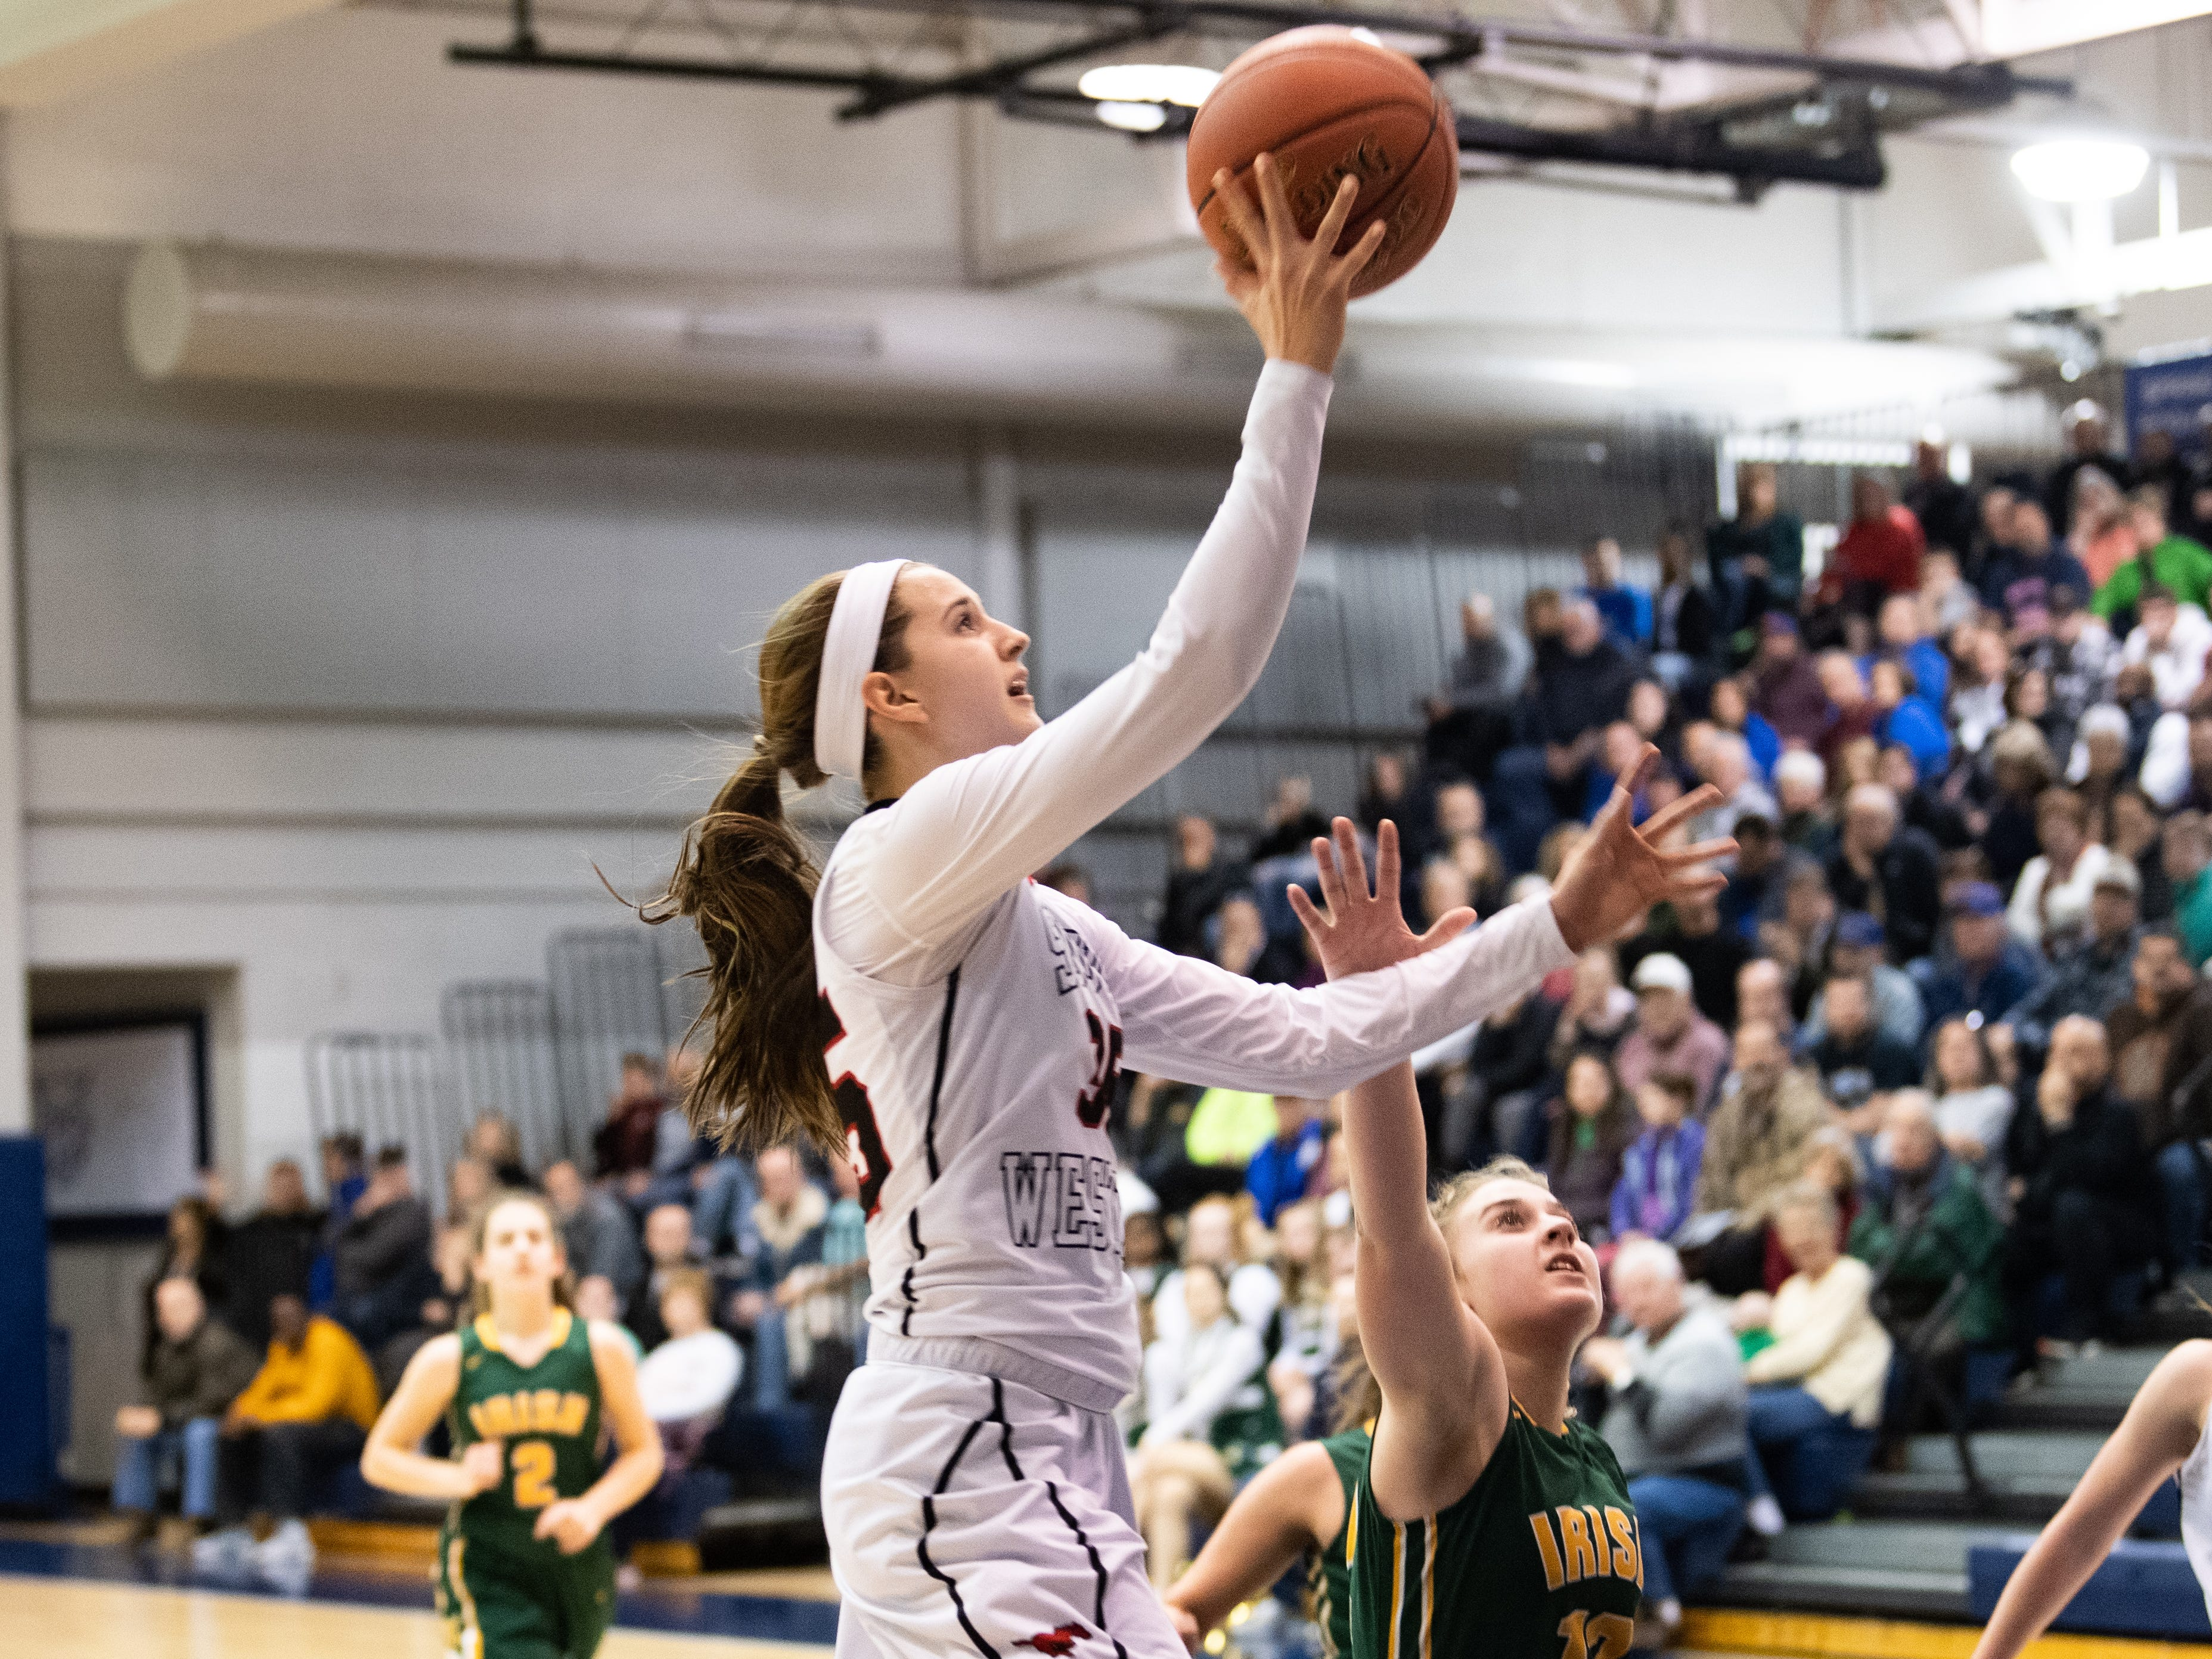 T. Geiman (35) of South Western takes the easy layup during the YAIAA girls' basketball quarterfinal game between South Western and York Catholic, February 8, 2019 at Dallastown Area High School. The Mustangs defeated the Fighting Irish at 53-20.